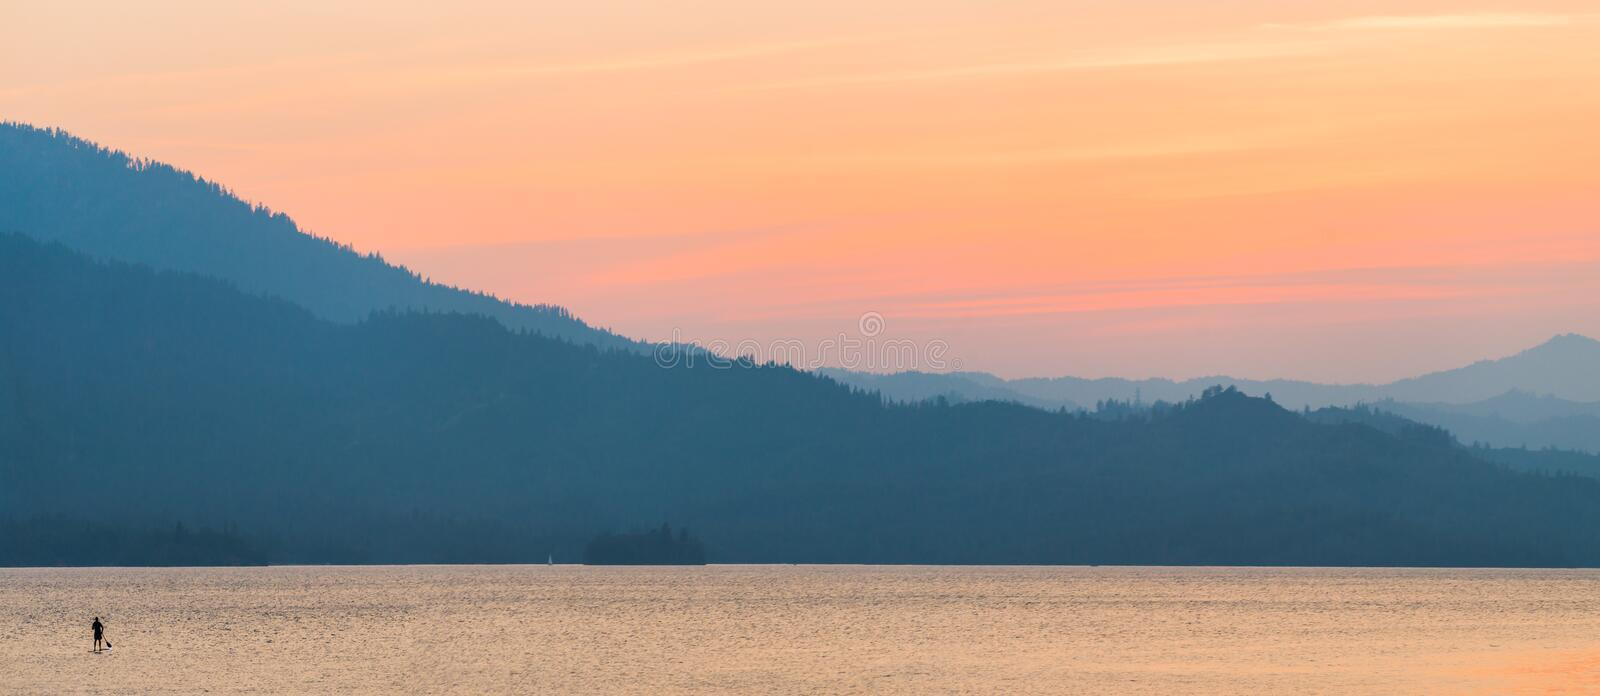 Brilliant, colorful sunset over Whiskeytown Lake in Northern California with a paddleboarder in the water royalty free stock images